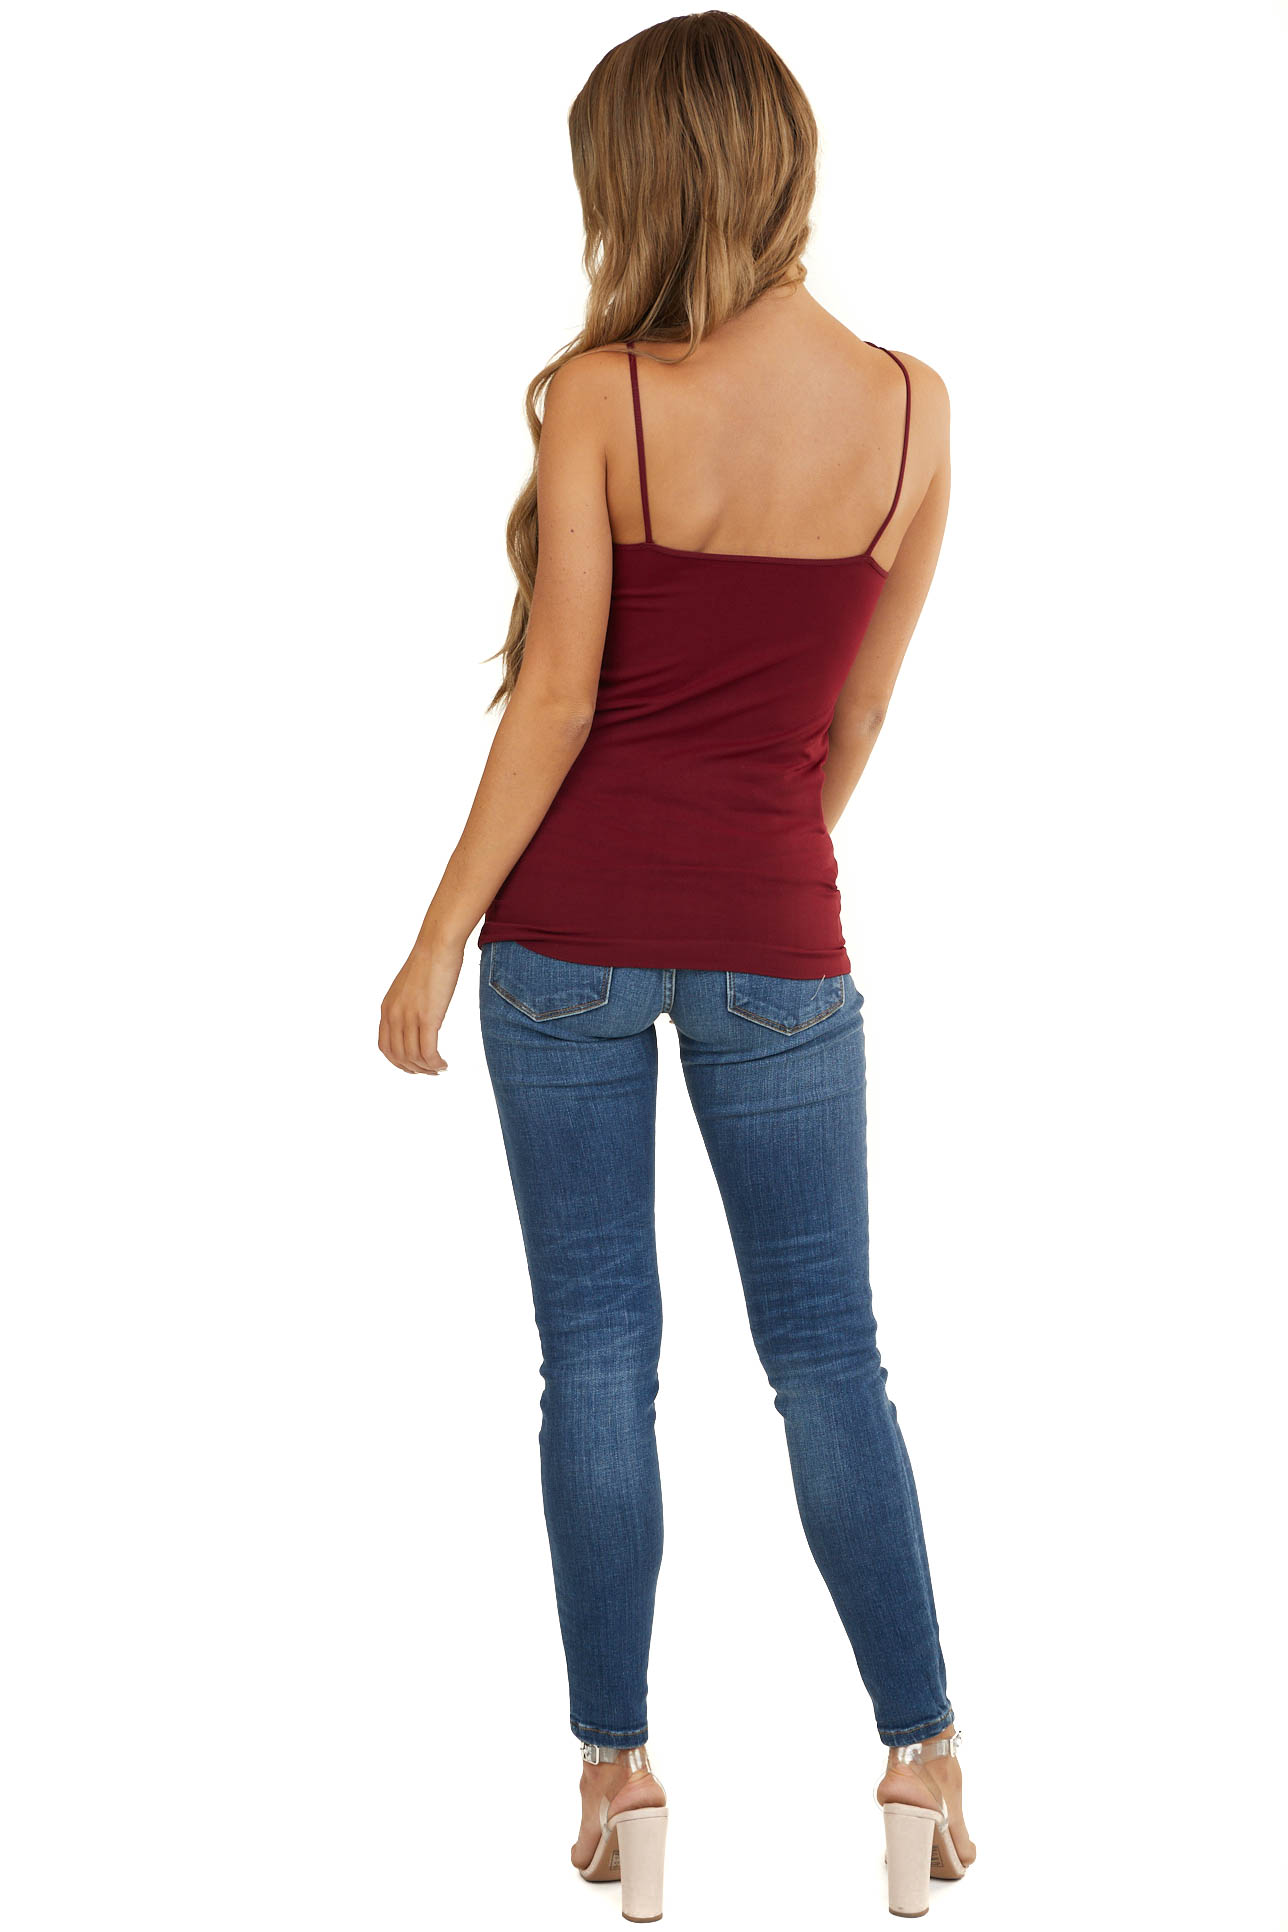 Burgundy Criss Cross Strappy Camisole